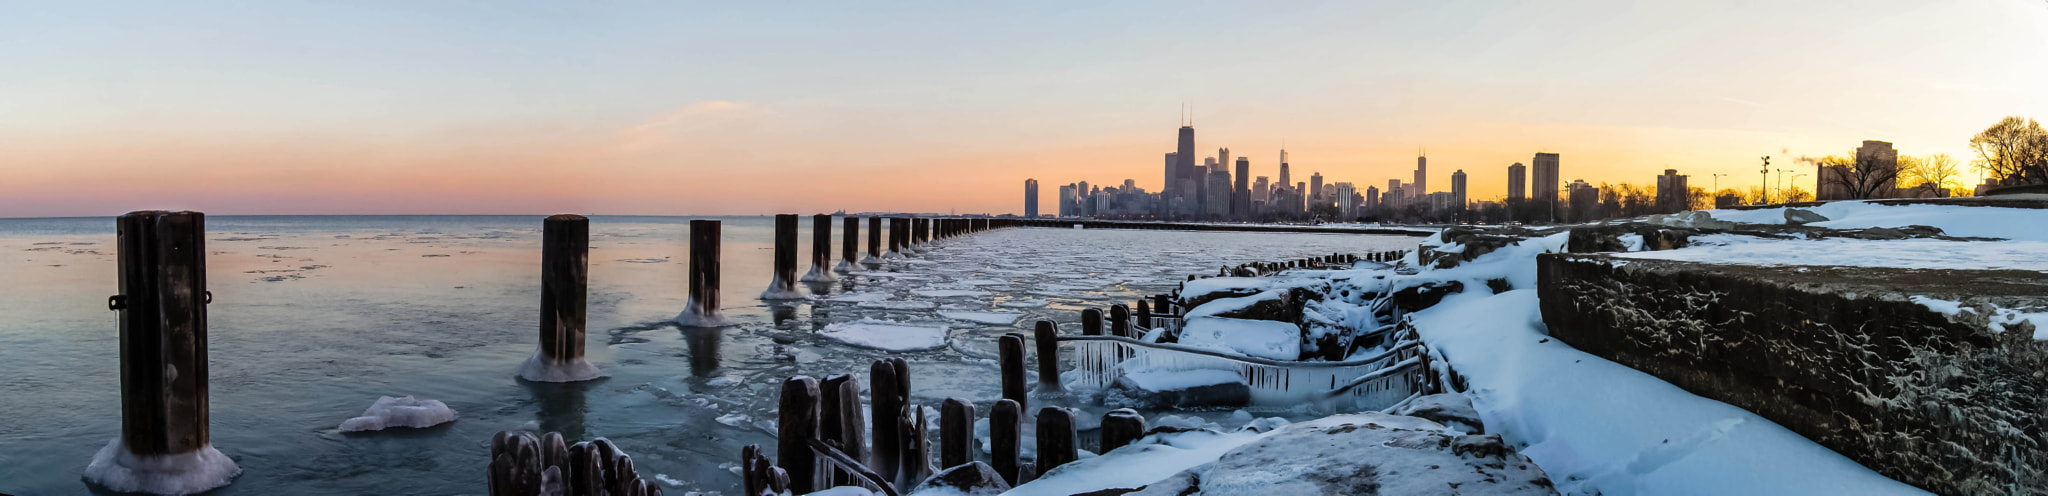 Photograph Chicago pano from Fullerton Ave Beach by Jeffrey Olson on 500px